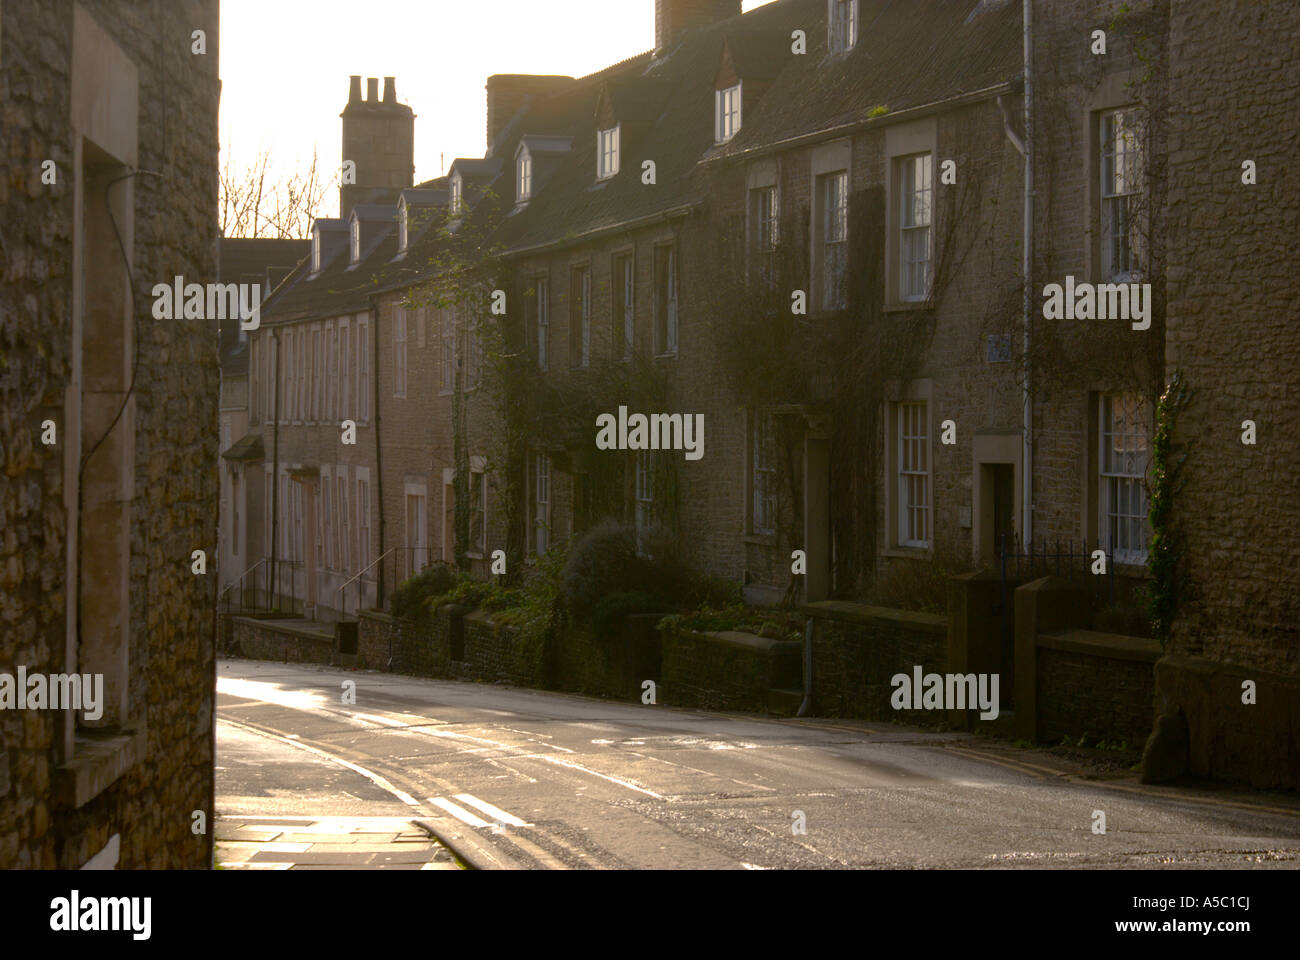 Merchants' houses on Vallis Way, Frome in Somerset. - Stock Image